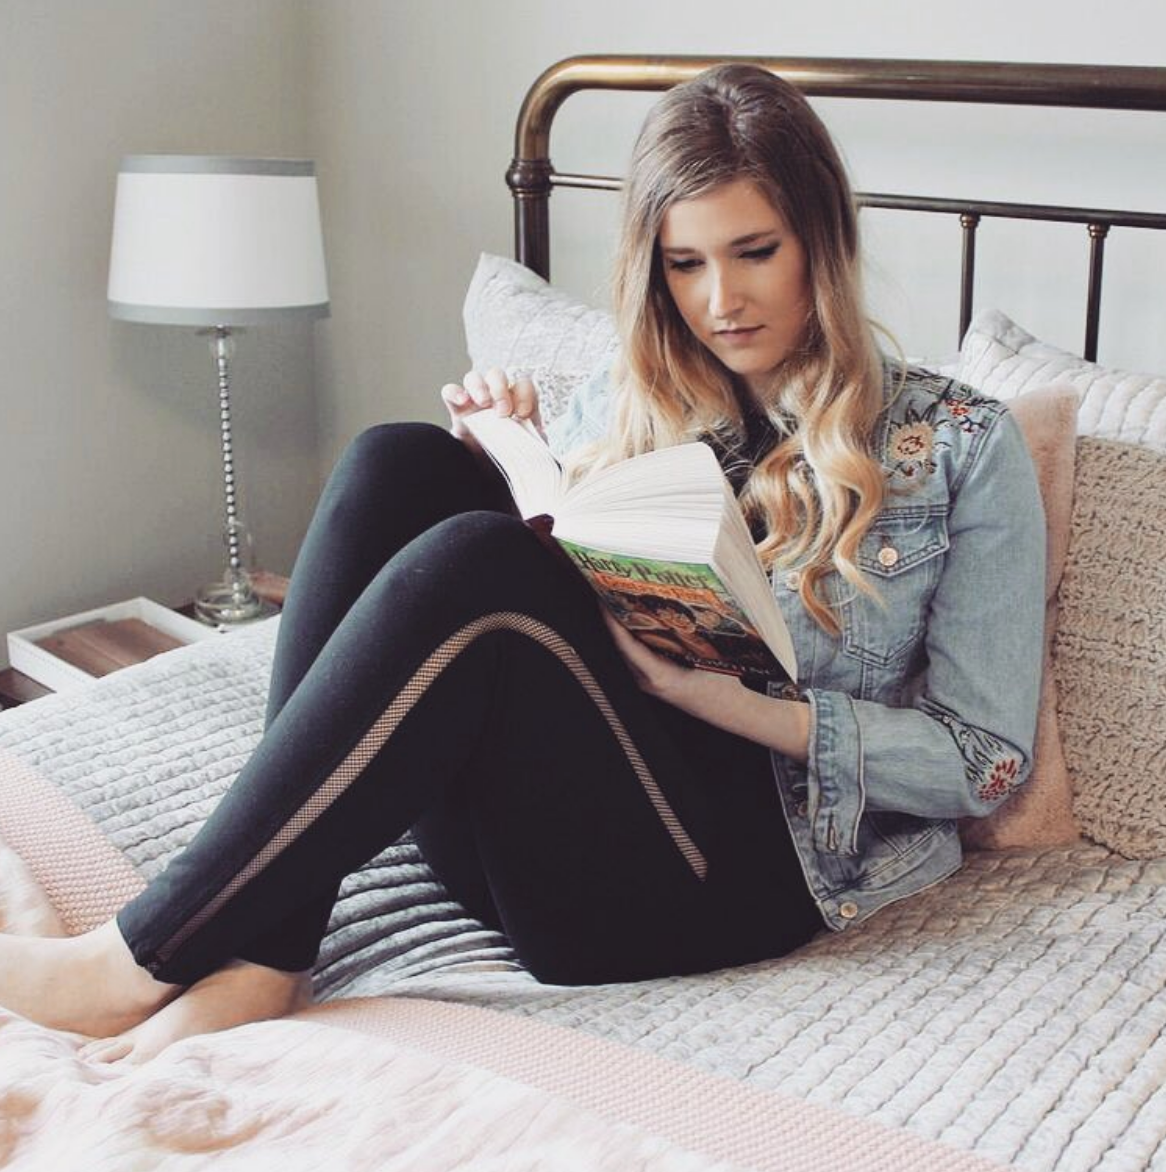 Girl wearing black mesh legging reading a book.